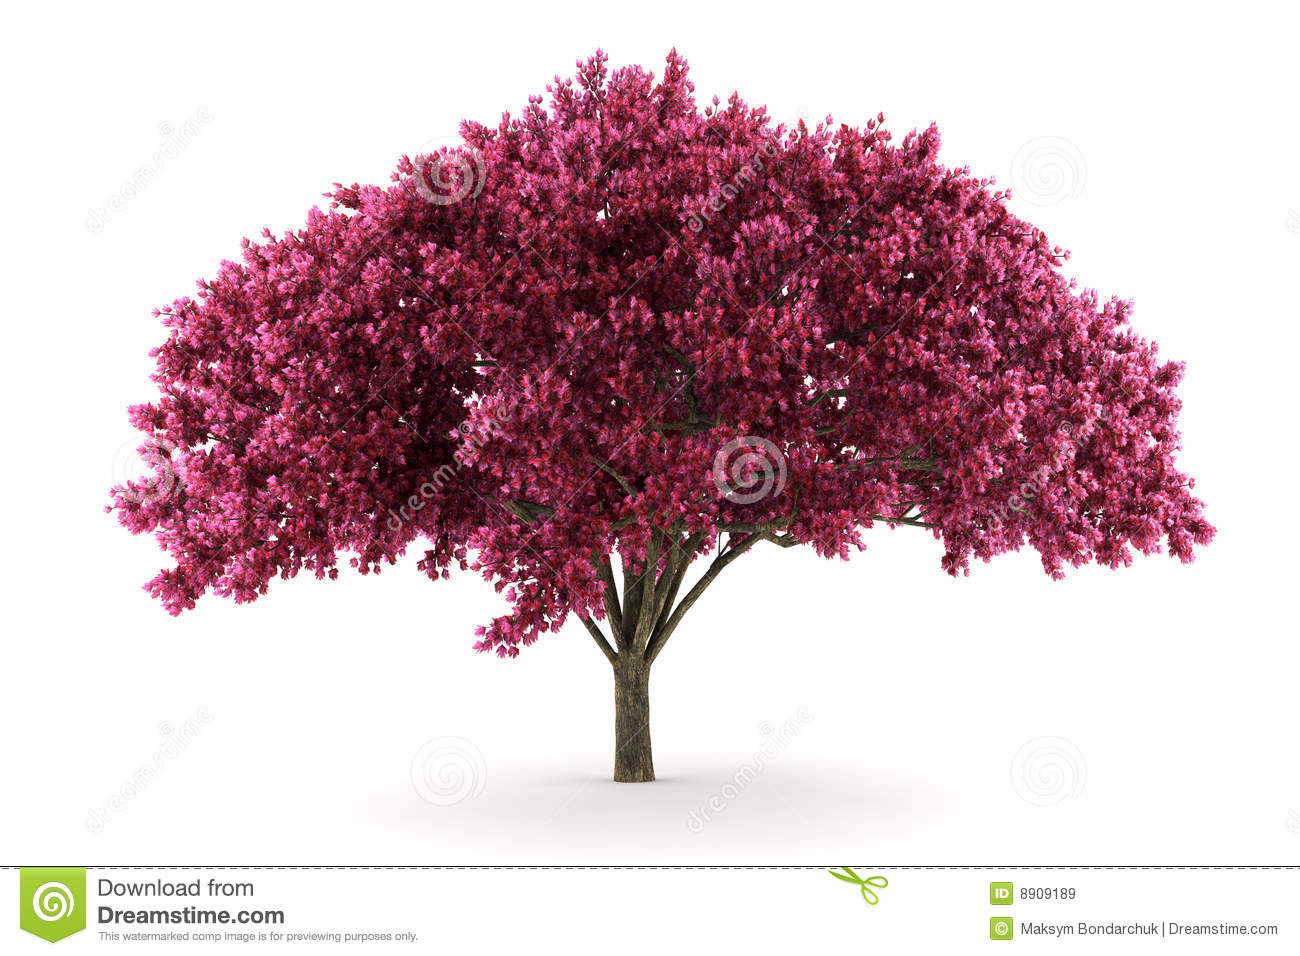 cherry tree black single women What's that tree worth (hopefully) you were paid $2096 for that single tree black cherry is a relatively fast growing species.